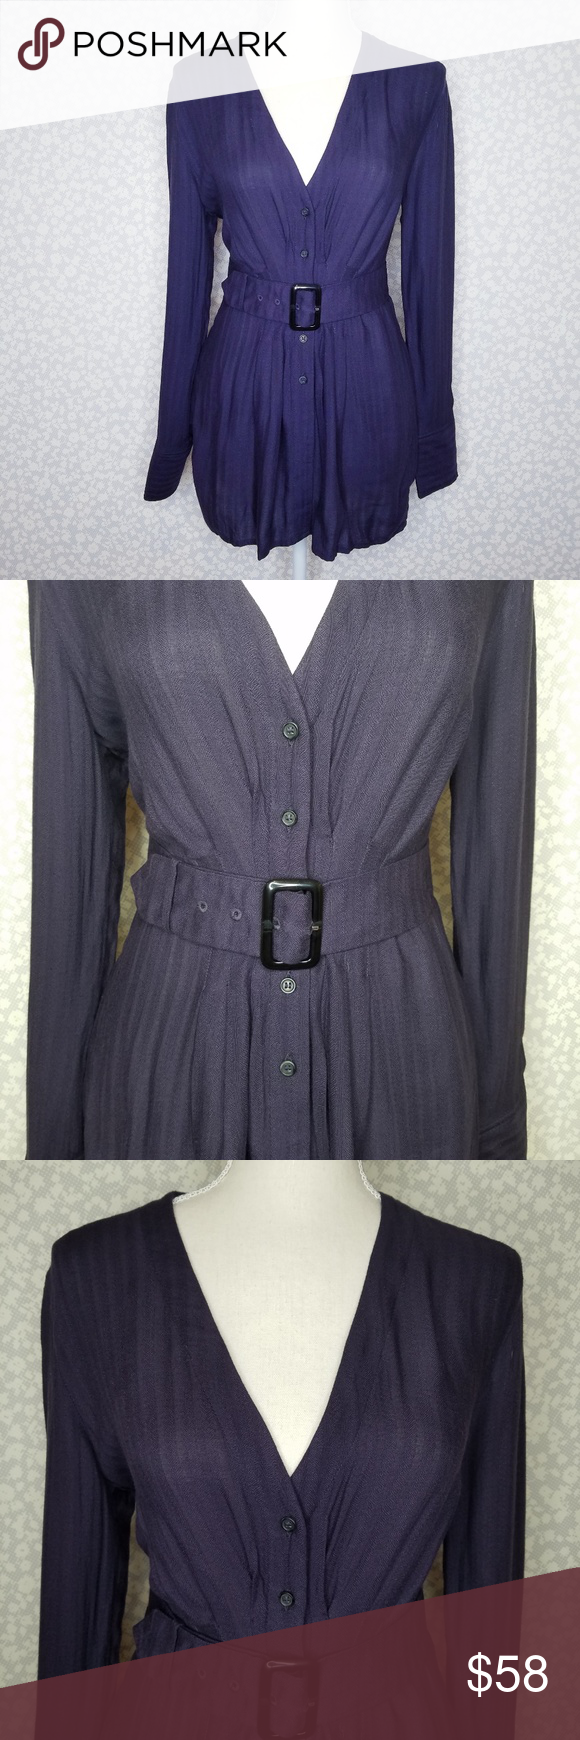 5b94db5aed5 NWT Free People Purple Button Down Blouse Belt Measurements (laid flat    approximate)